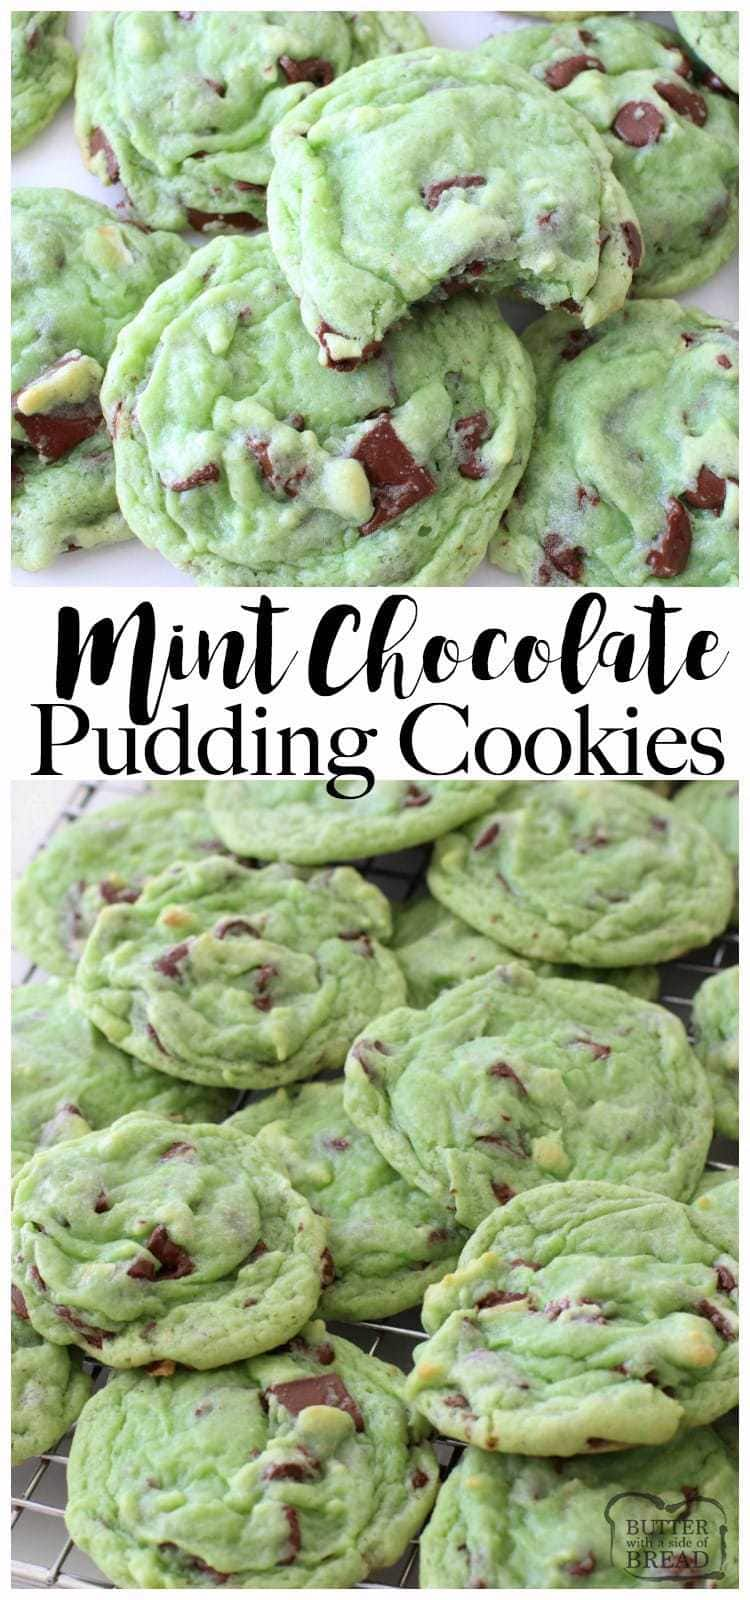 Mint Chocolate Chip Cookies made with pudding mix, mint extract & chocolate chips. Lovely mint cookie recipe perfect for those who love mint chip ice cream!